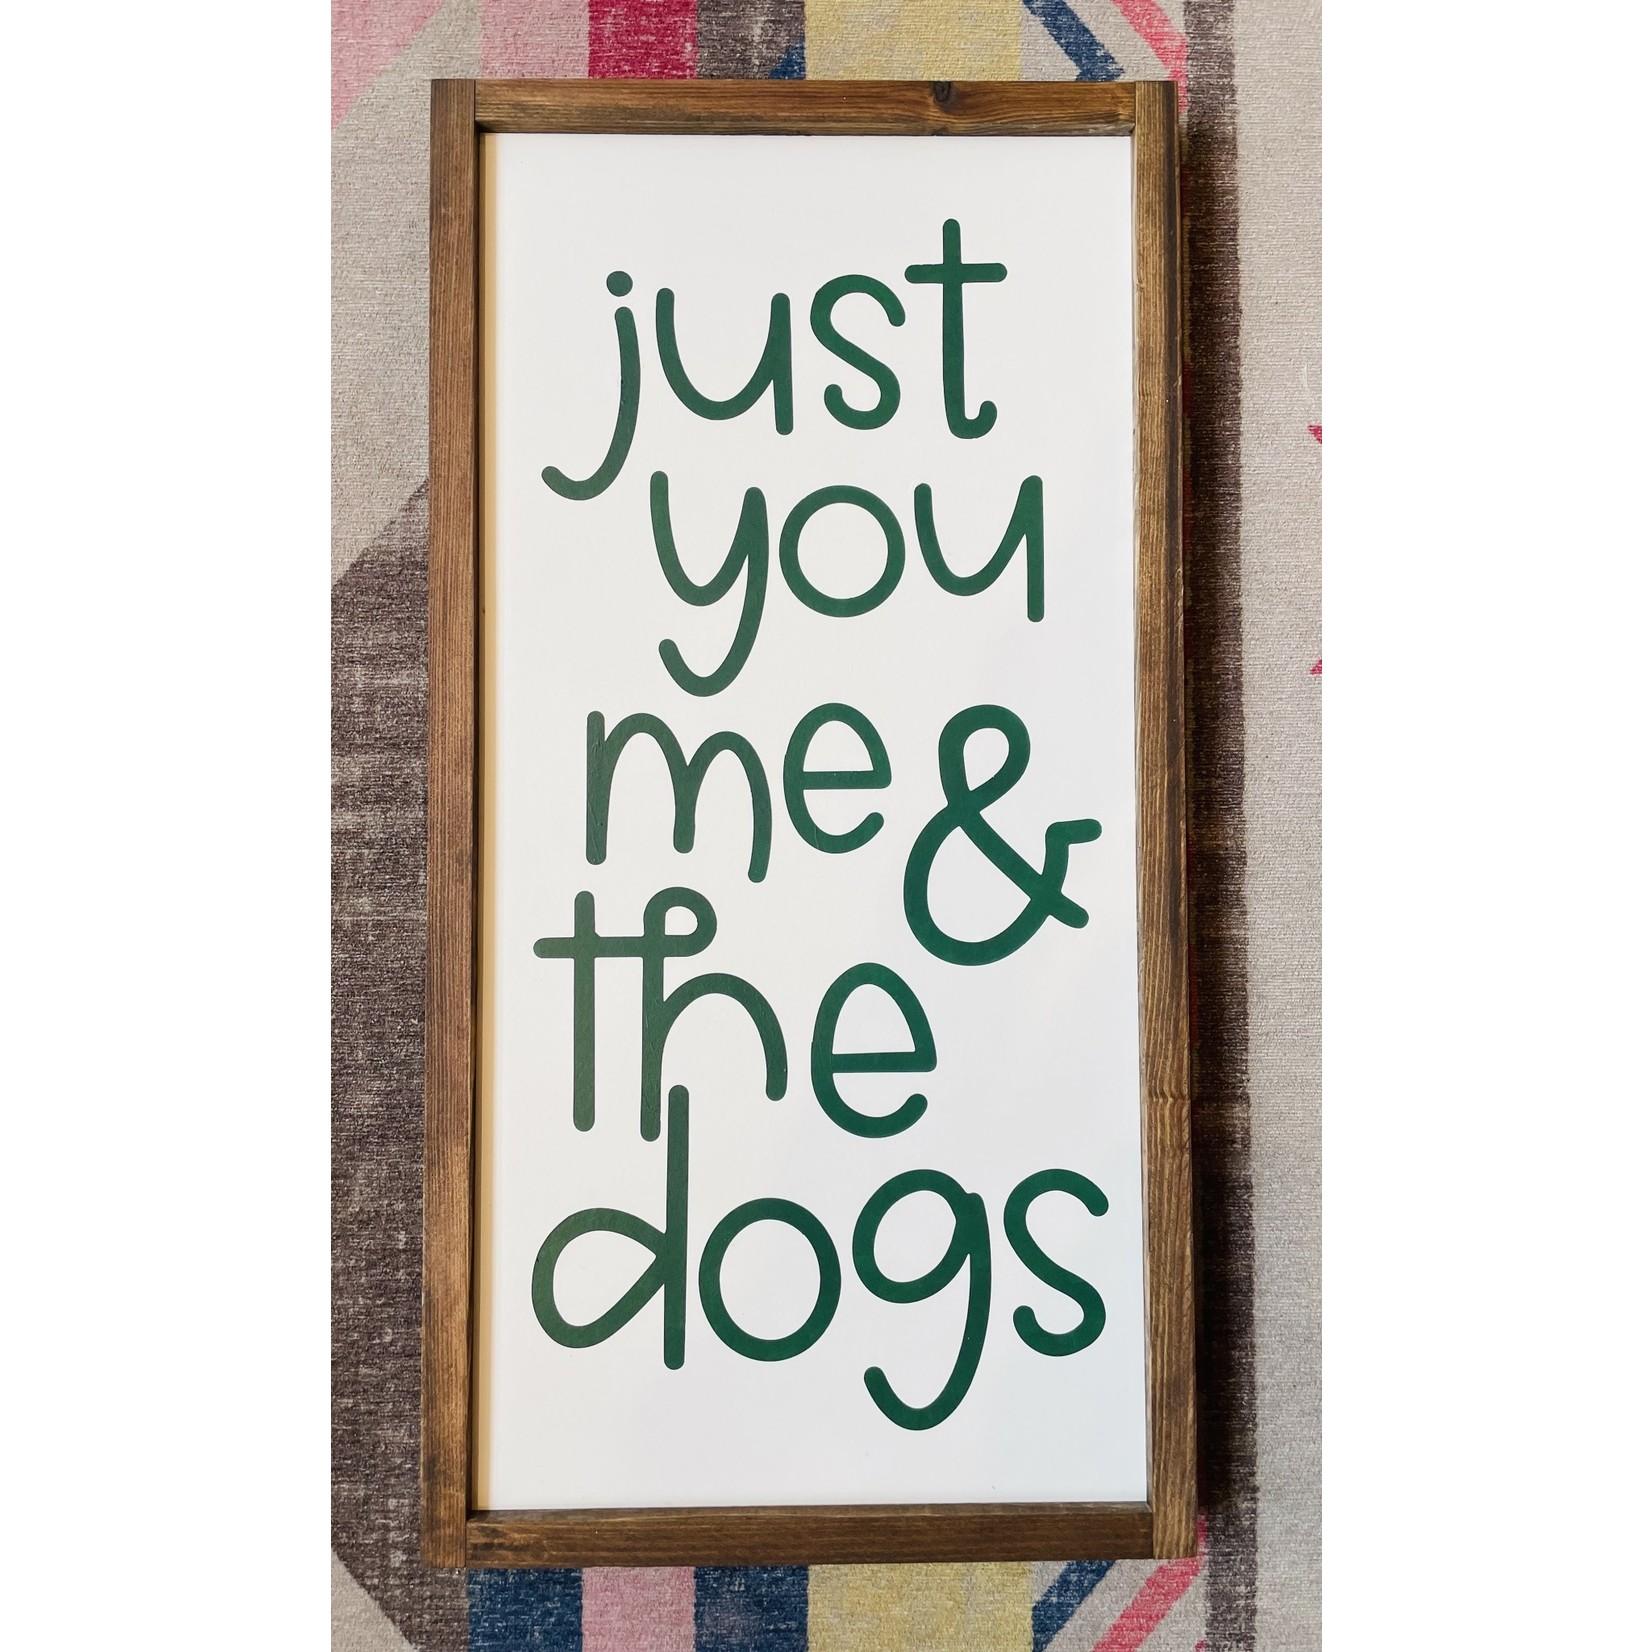 Favourite Things wood Just you me & the dogs 12x24 framed sign